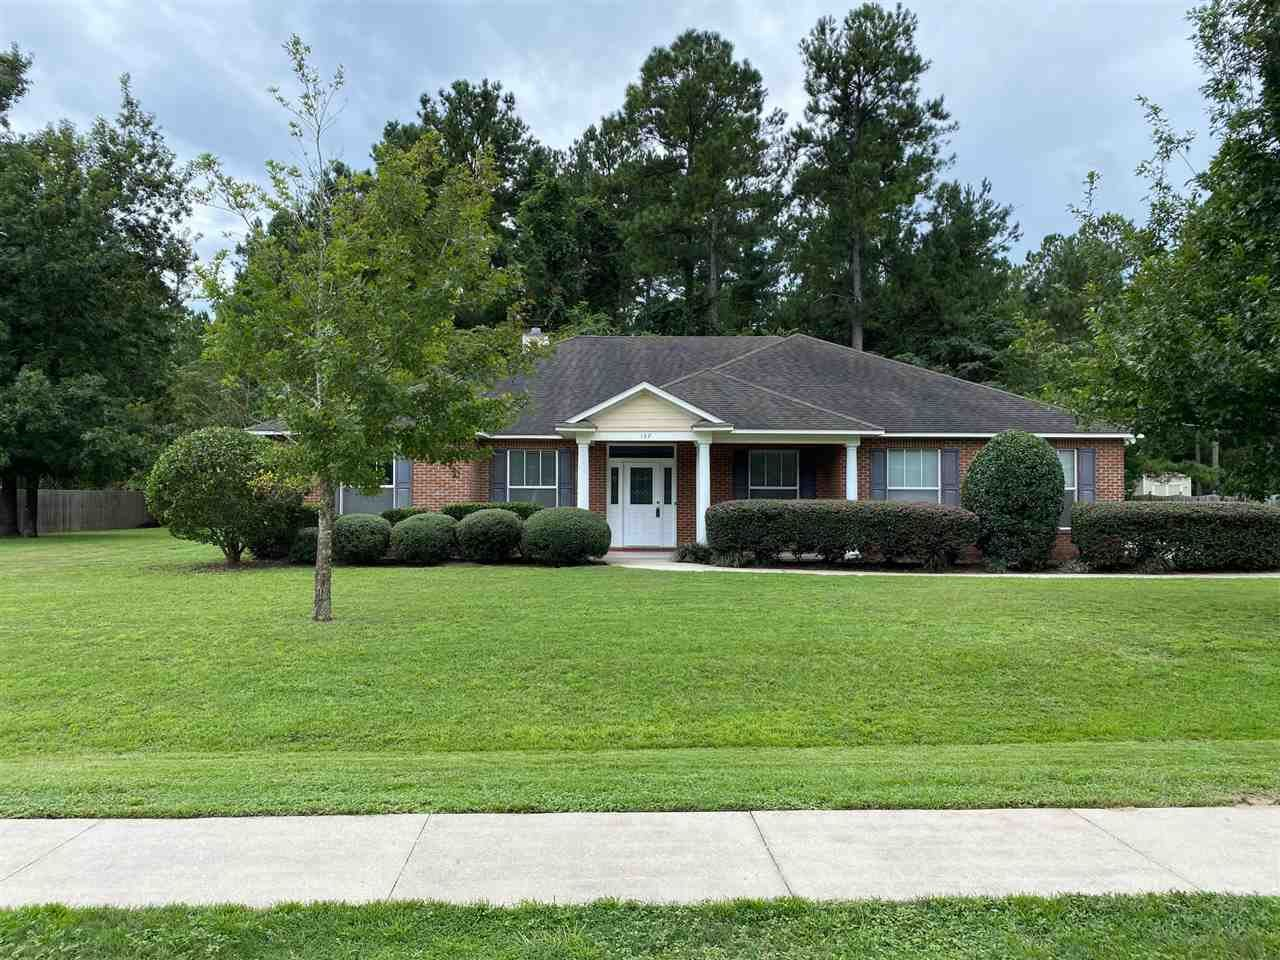 137 Parkside Circle, Crawfordville, FL 32327 - MLS#: 322770